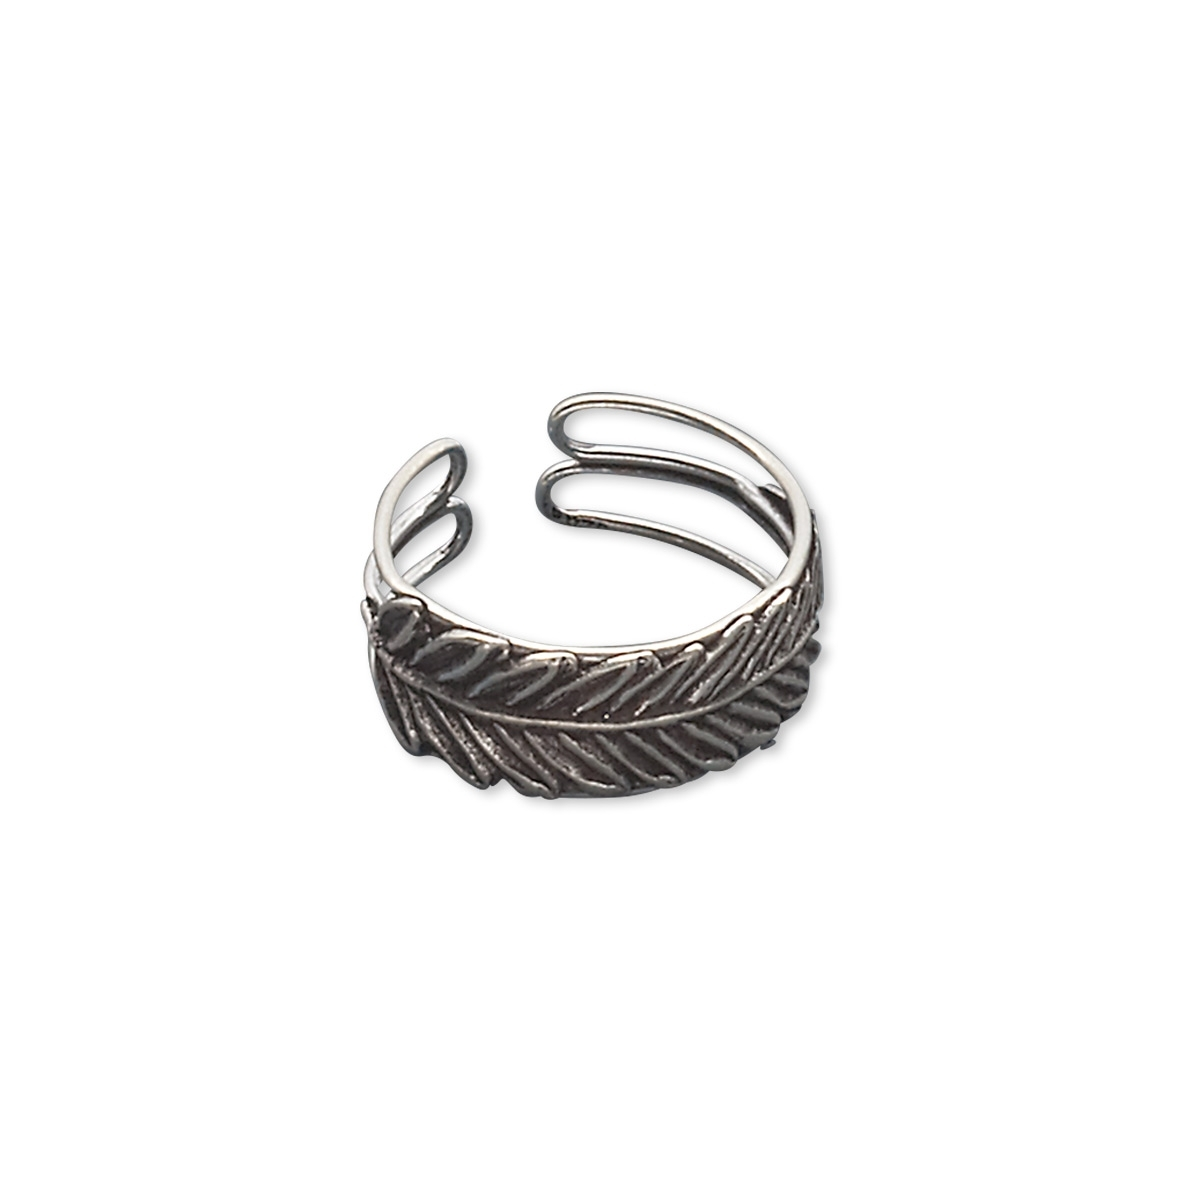 Ring, Antiqued Sterling Silver, 8Mm Wide With Feather Design In Newest Feather Toe Rings (Gallery 1 of 15)